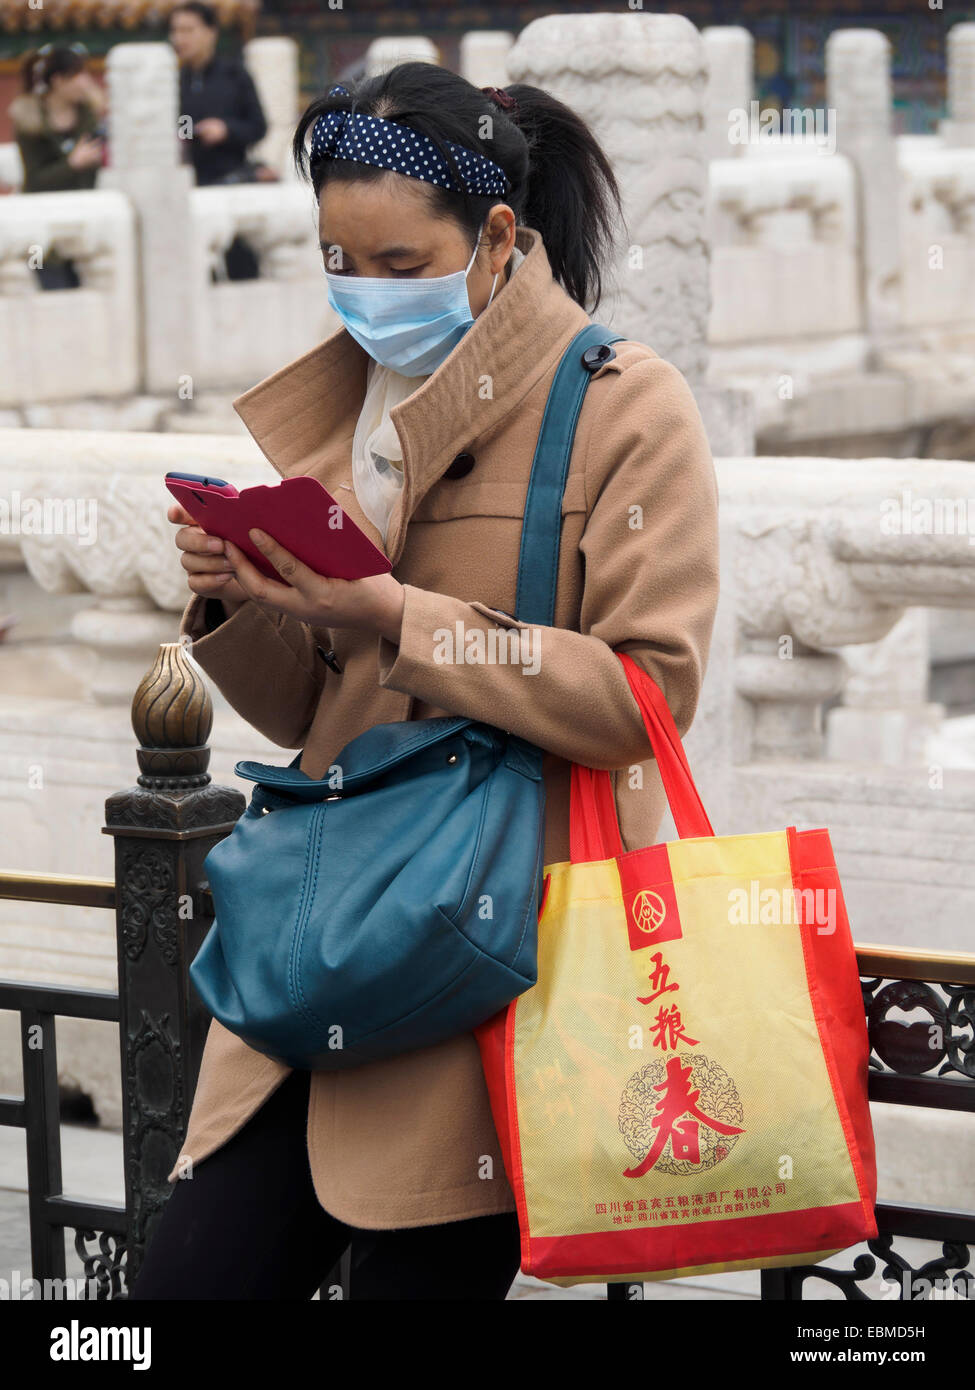 Chinese woman using smartphone while wearing a pollution mask because of heavy smog - Stock Image